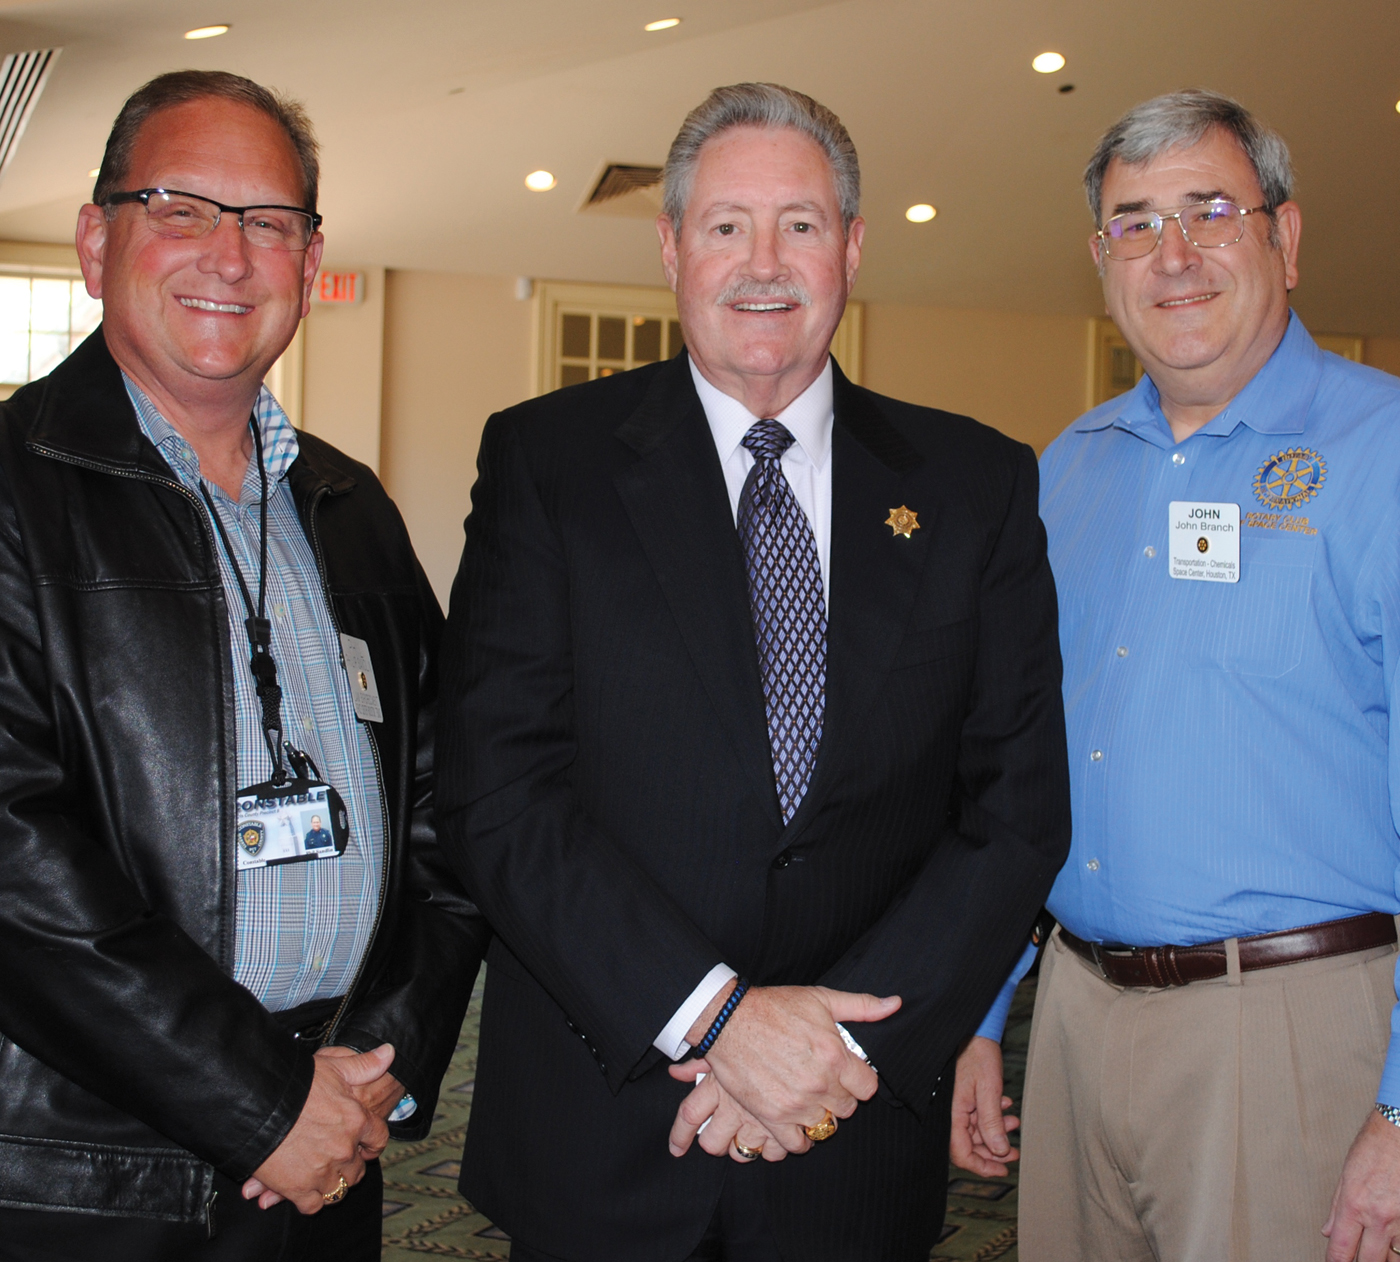 A new sheriff was the town the other day – Harris County Sheriff Ron Hickman, center, who came down to Clear Lake to speak at the Space Center Rotary Club luncheon at Bay Oaks Country Club. Here, Rotary President John Branch, right, and Precinct 8 Constable and Rotary member Phil Sandlin thank him for coming.